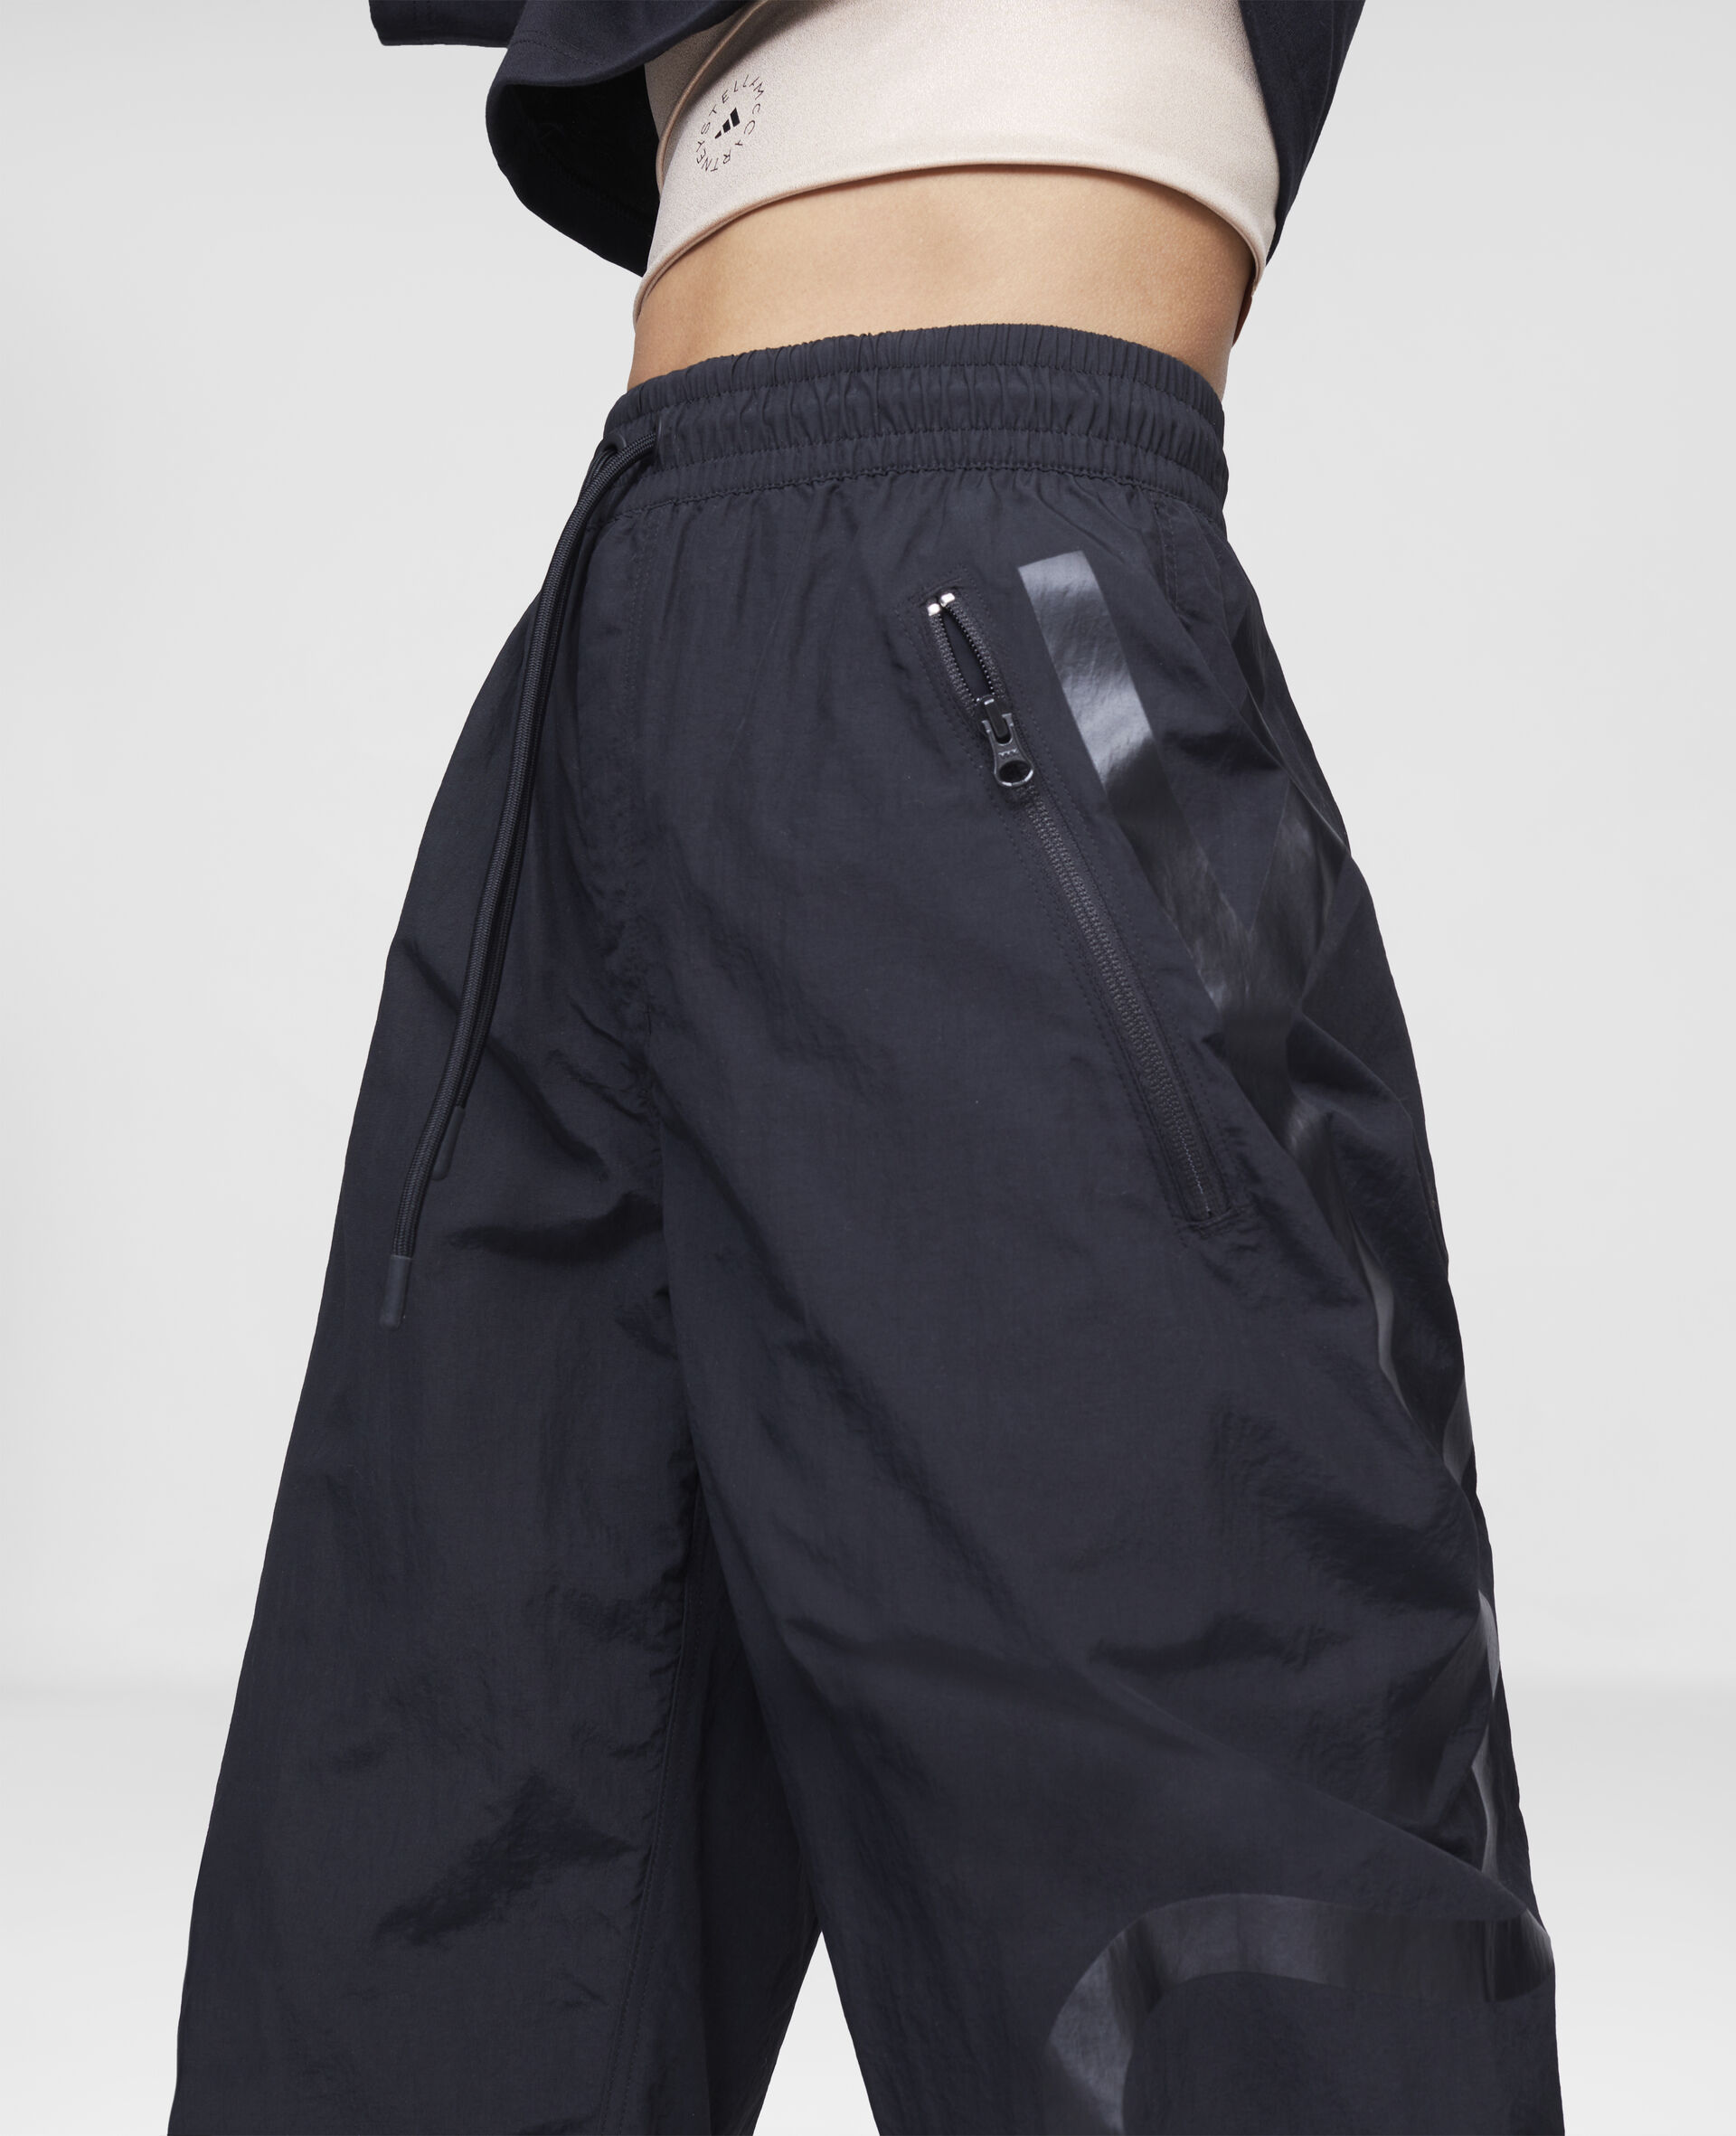 Black Woven Training Trousers-Black-large image number 3